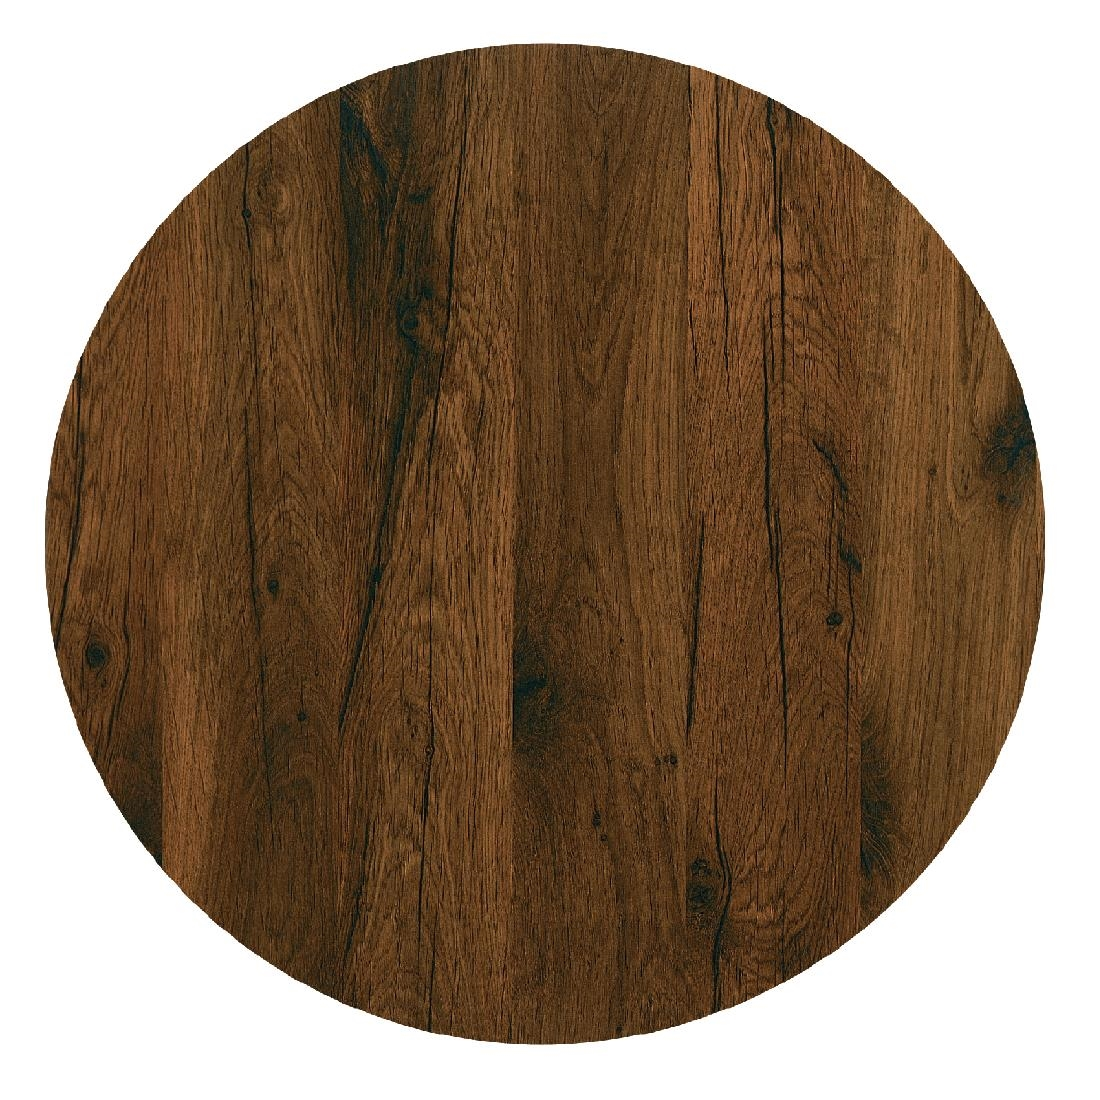 Werzalit Pre Drilled Round Table Tops Antique Oak P Cg718 Buy